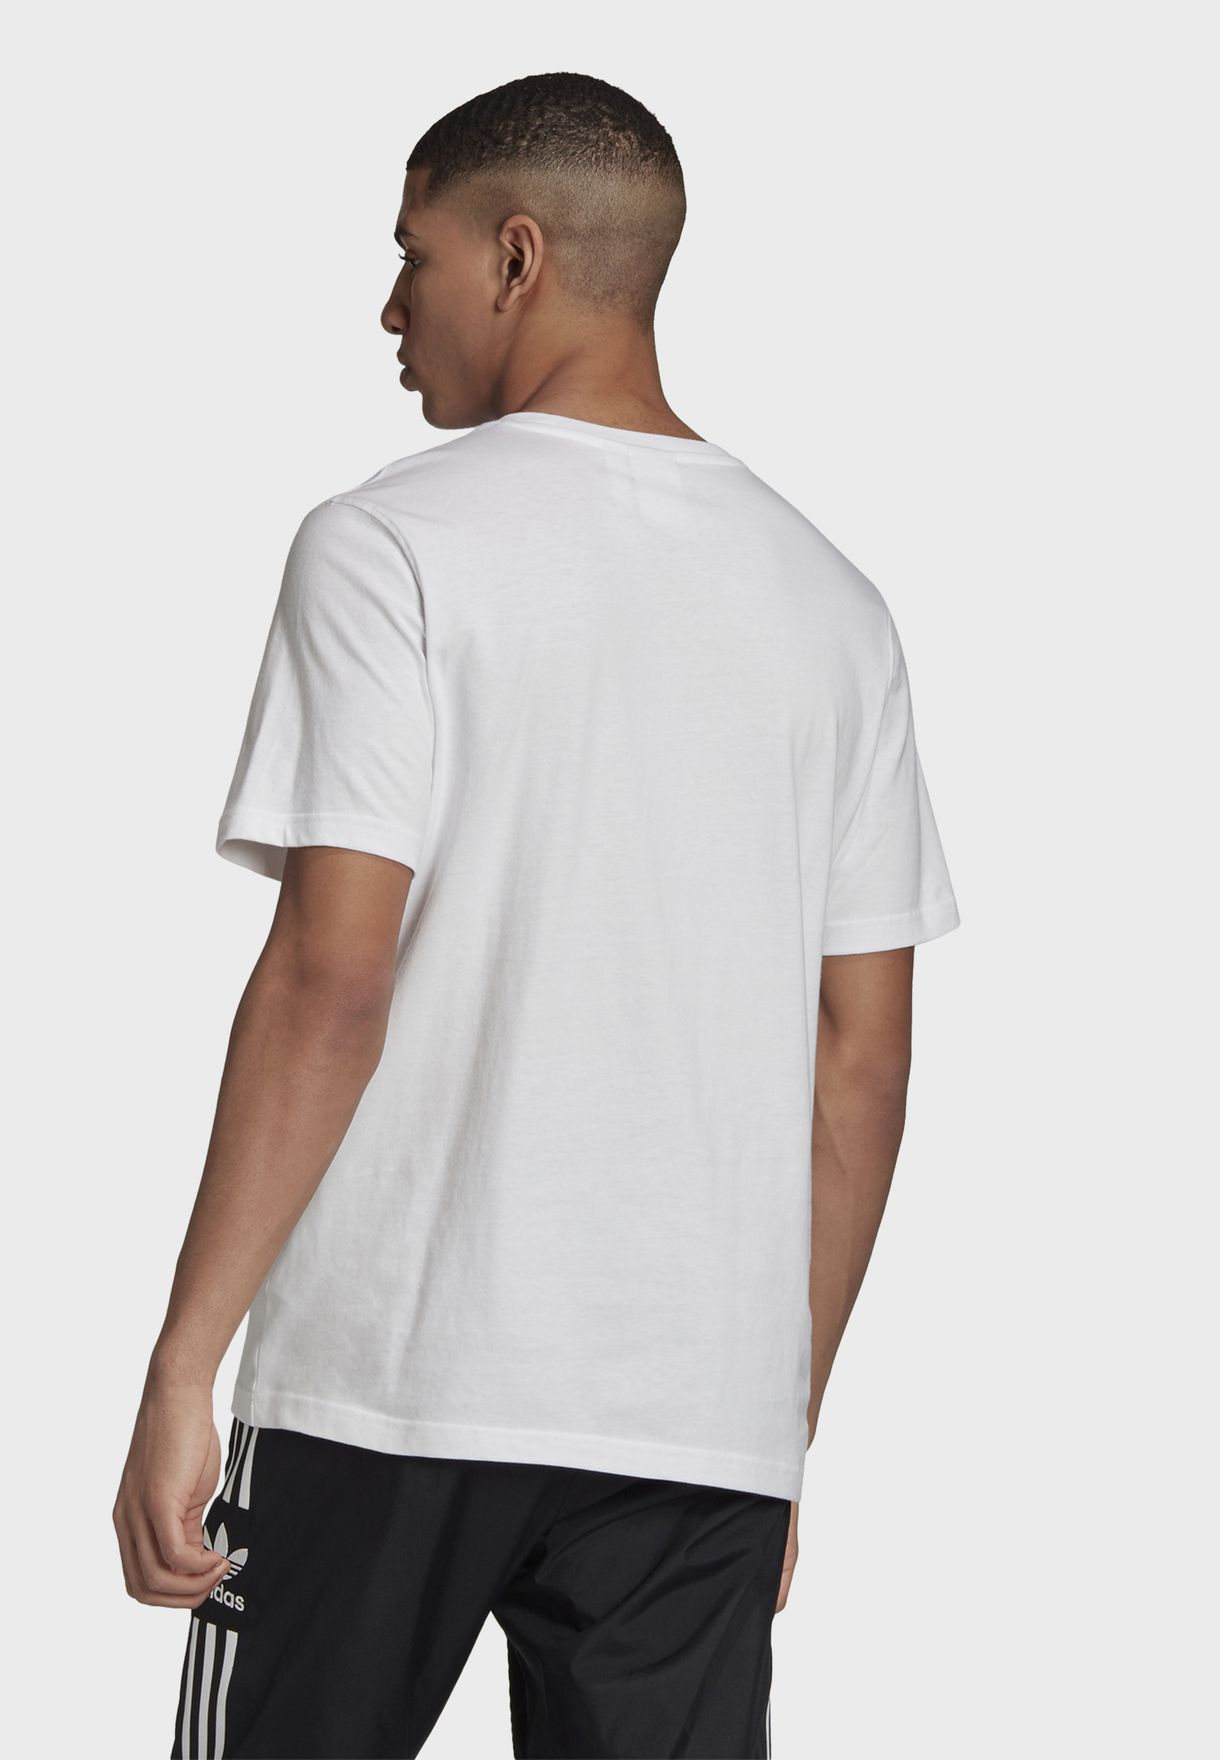 Graphics Casual Men's Graphic T-Shirt